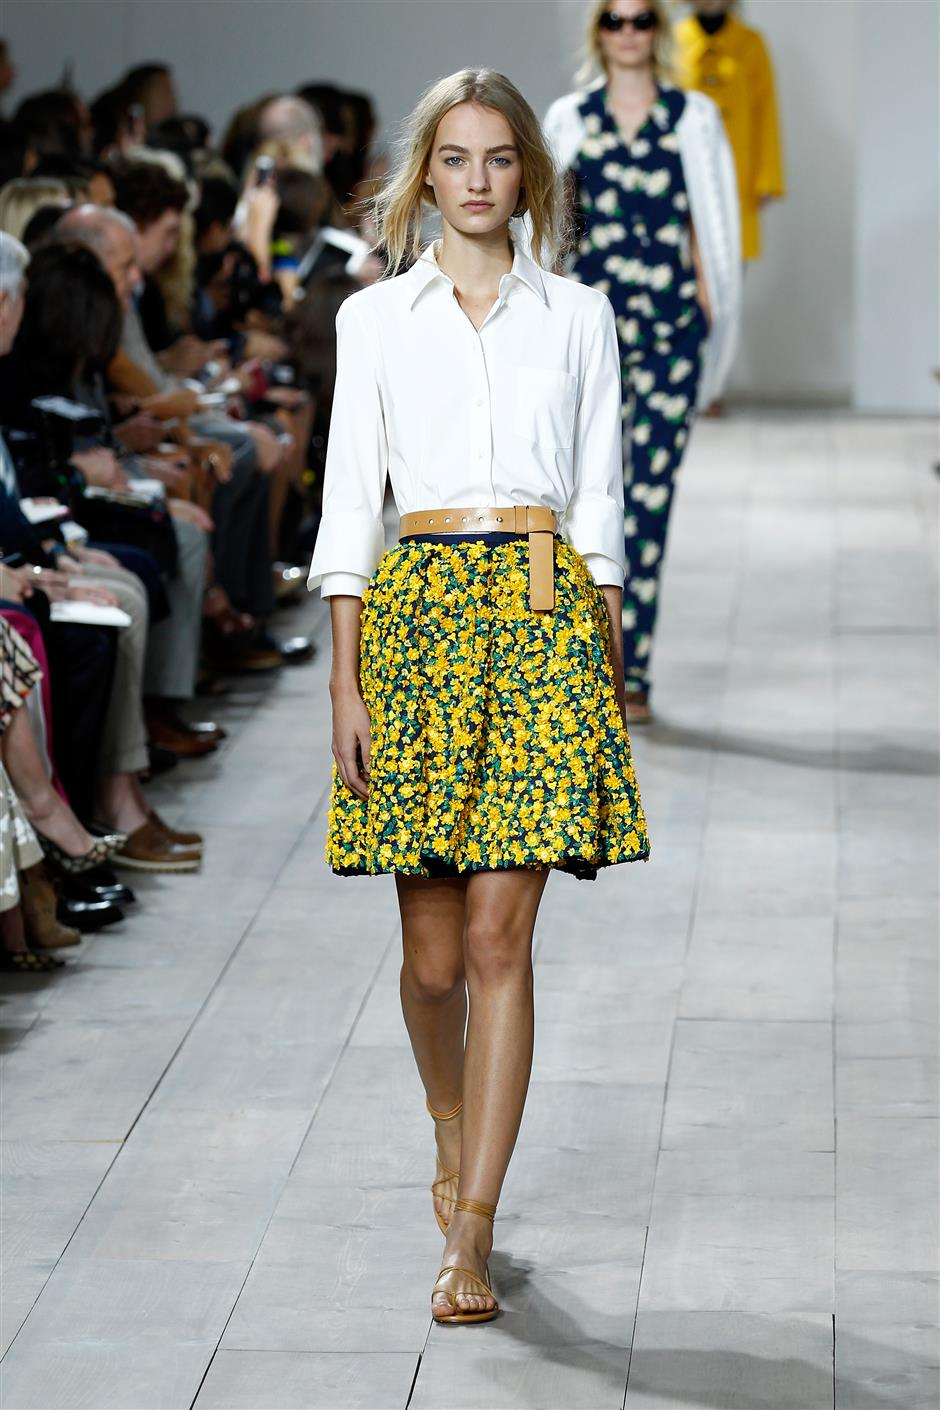 A crisp white shirt tucked into an above the knee 3D floral applique skirt with a light tan leather belt.